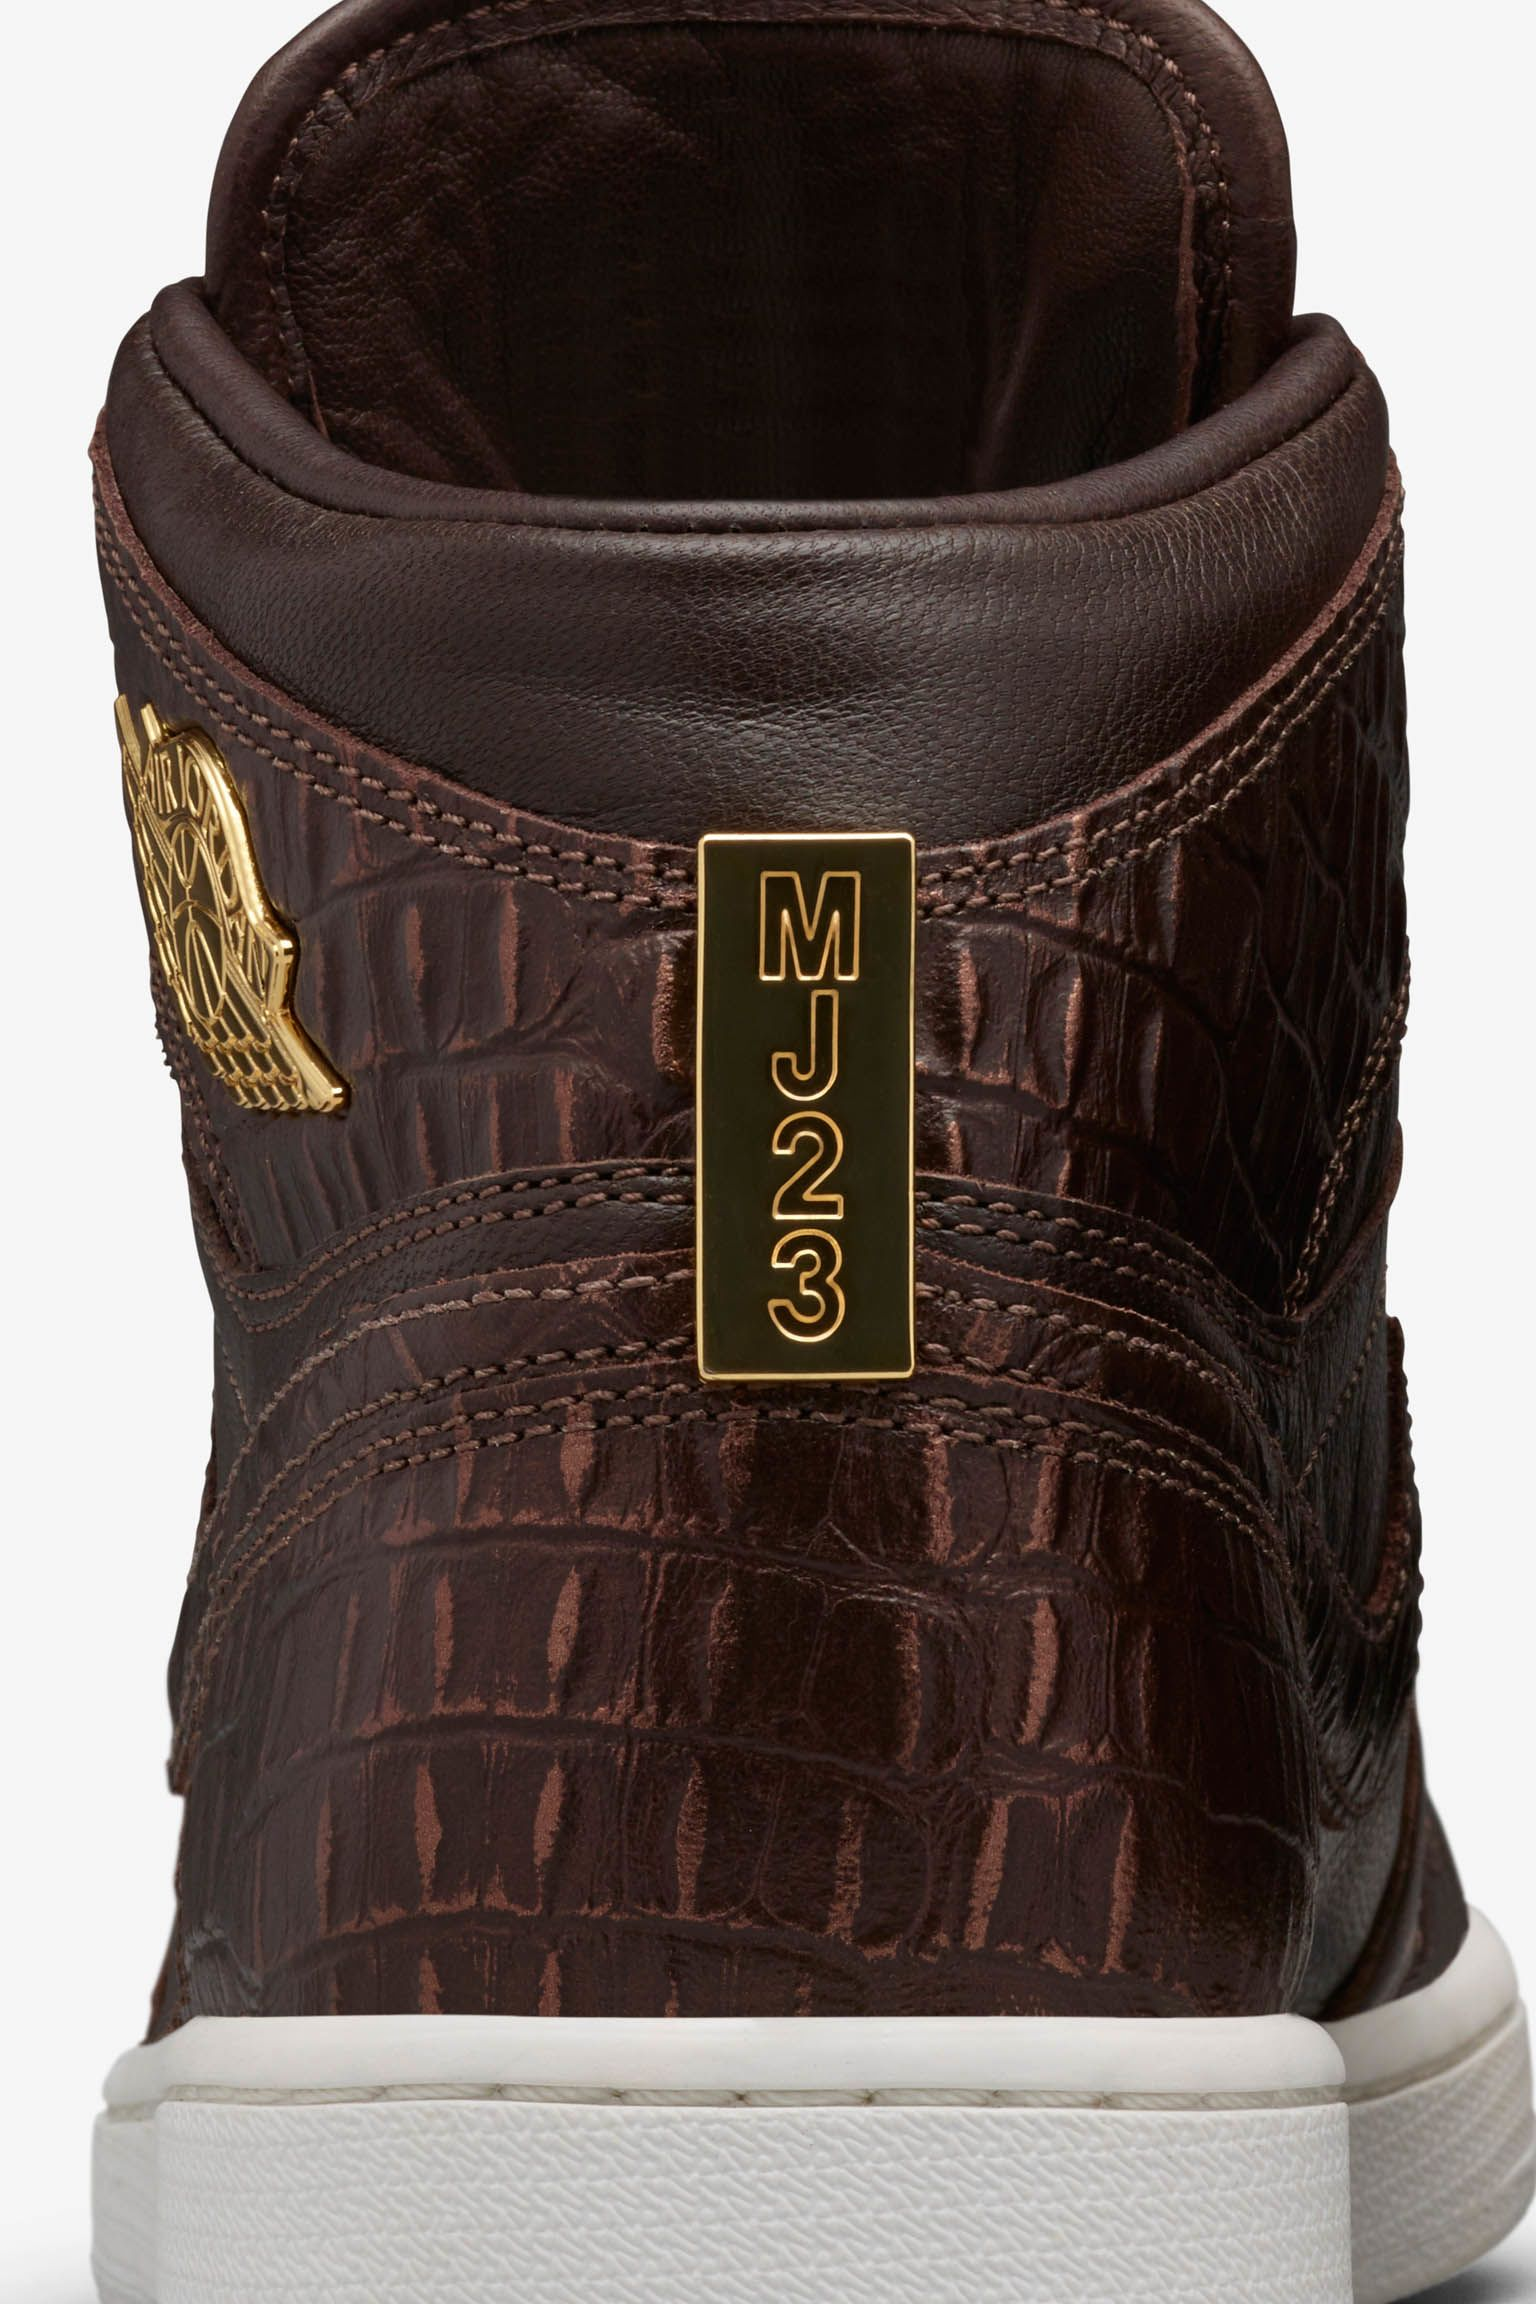 Air Jordan 1 Retro Pinnacle 'Baroque Brown' Release Date